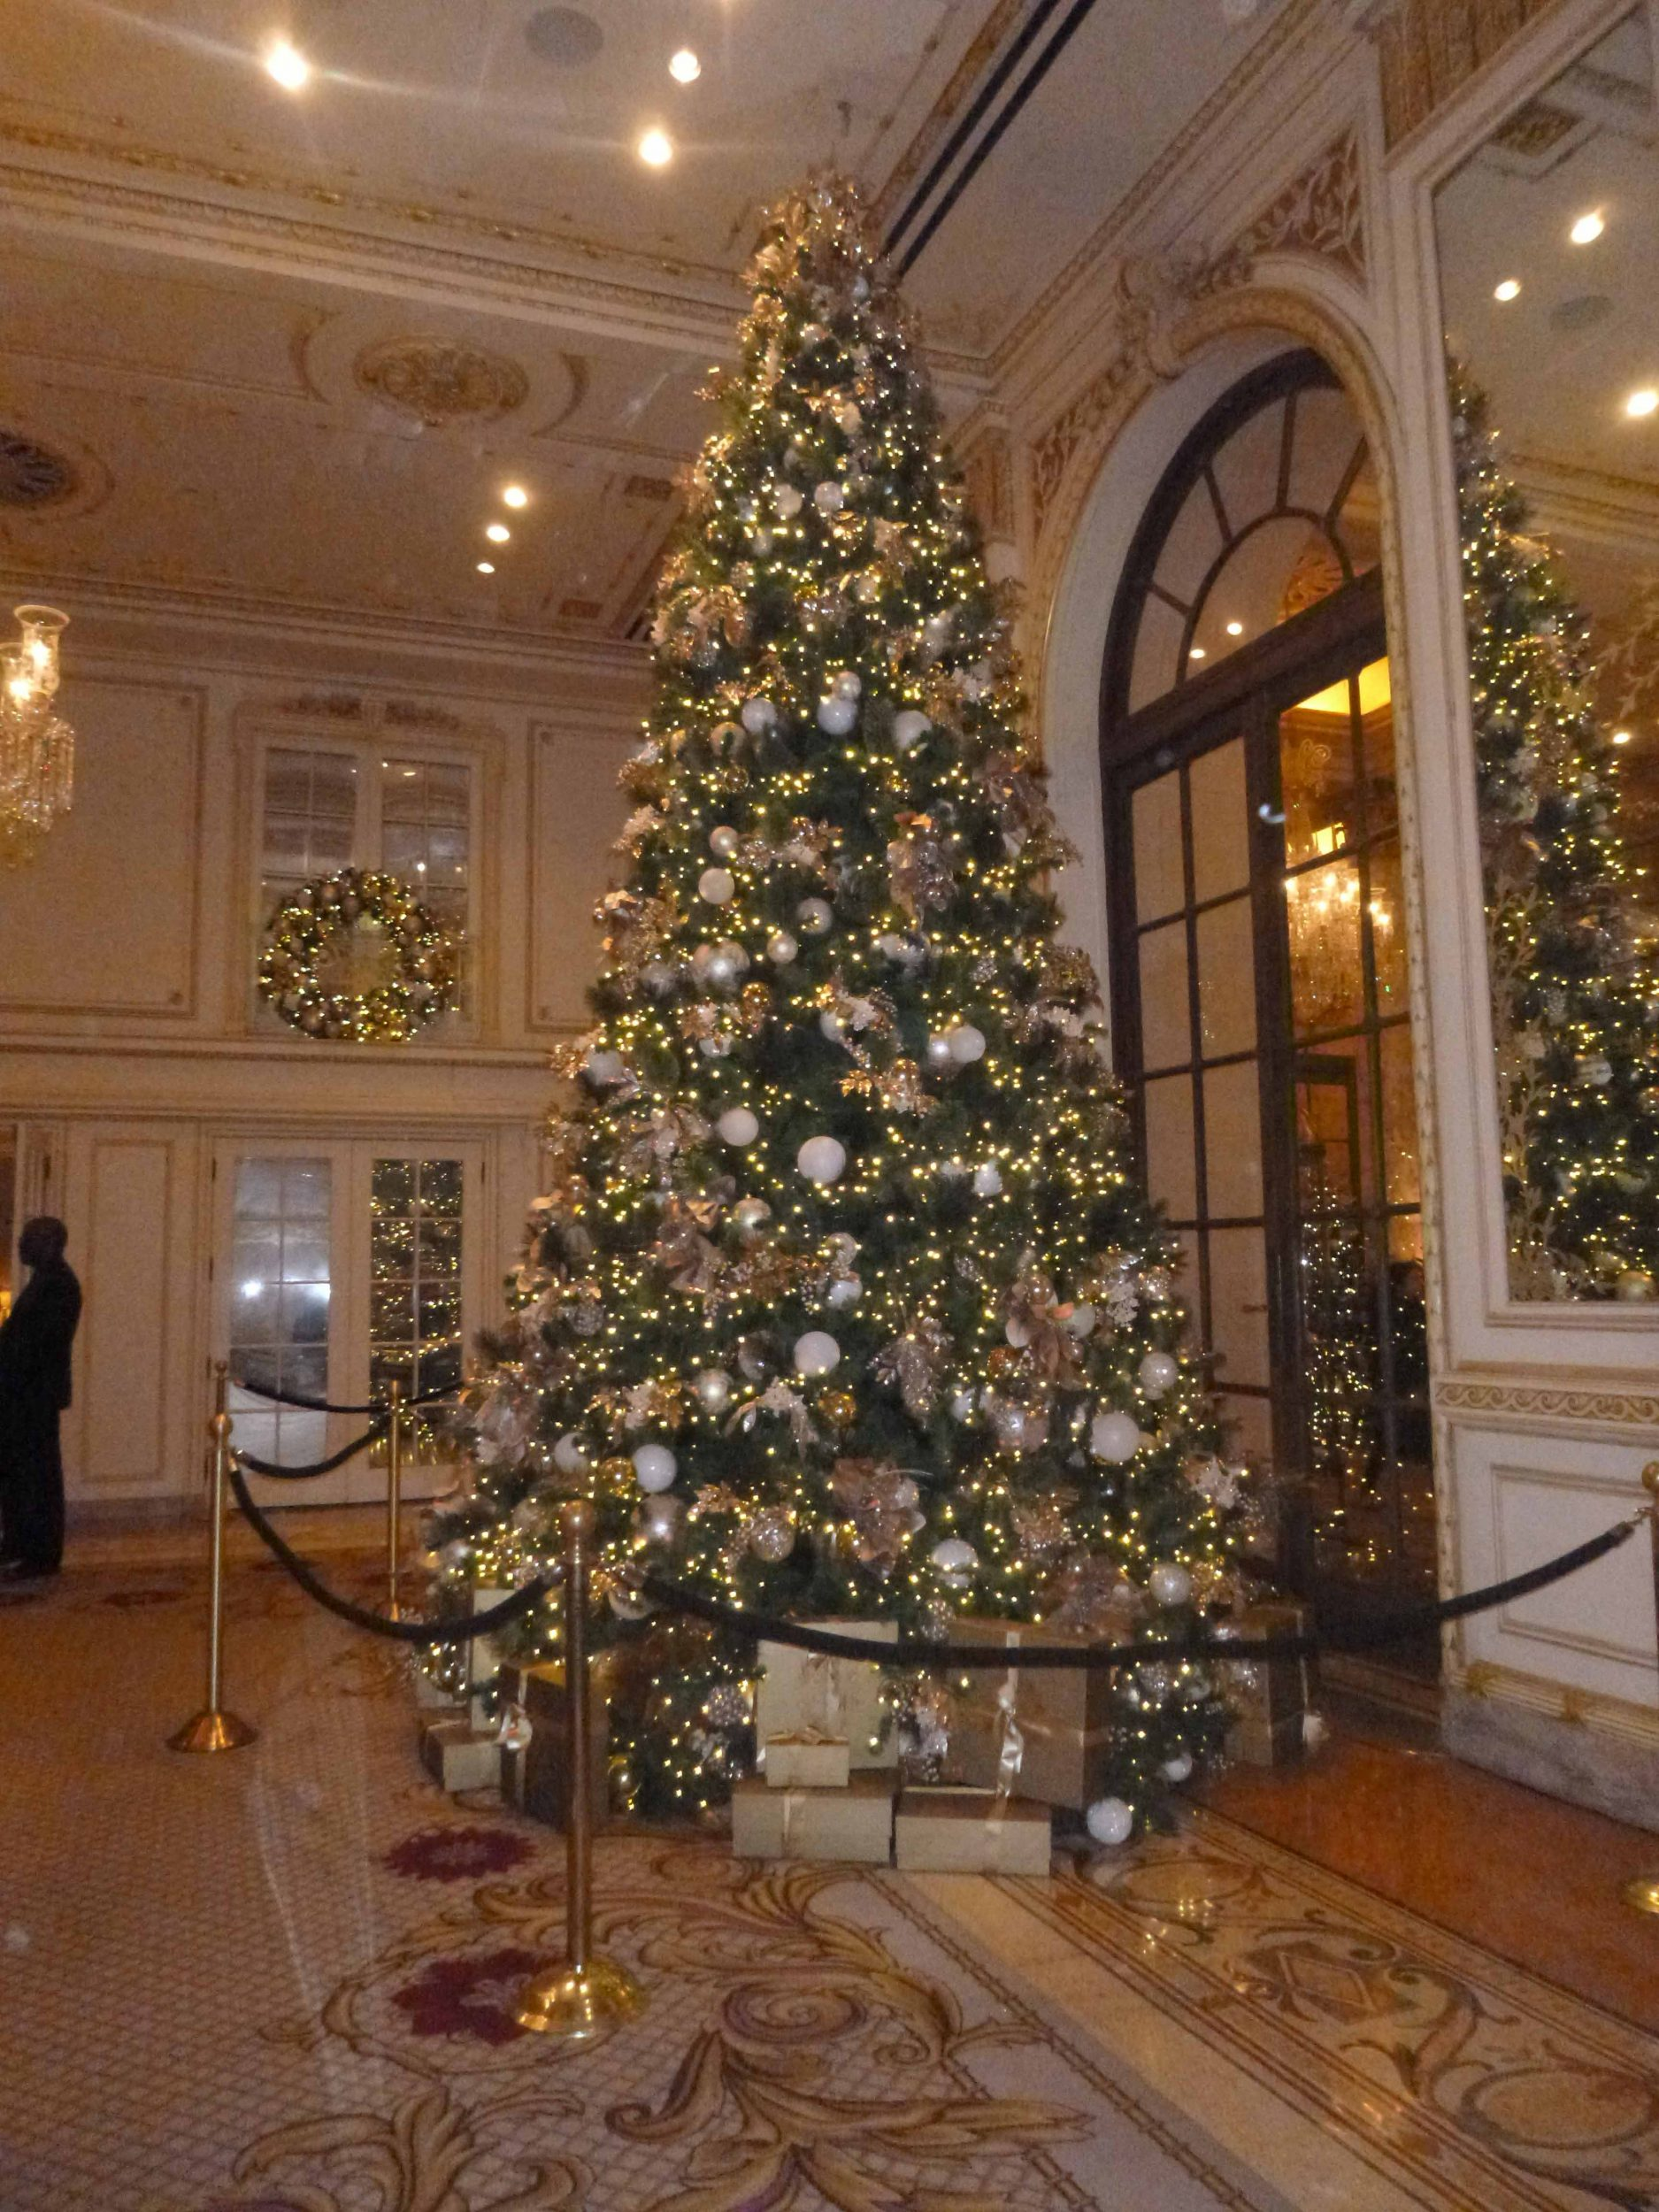 The stunning Christmas tree at the New York Plaza hotel.